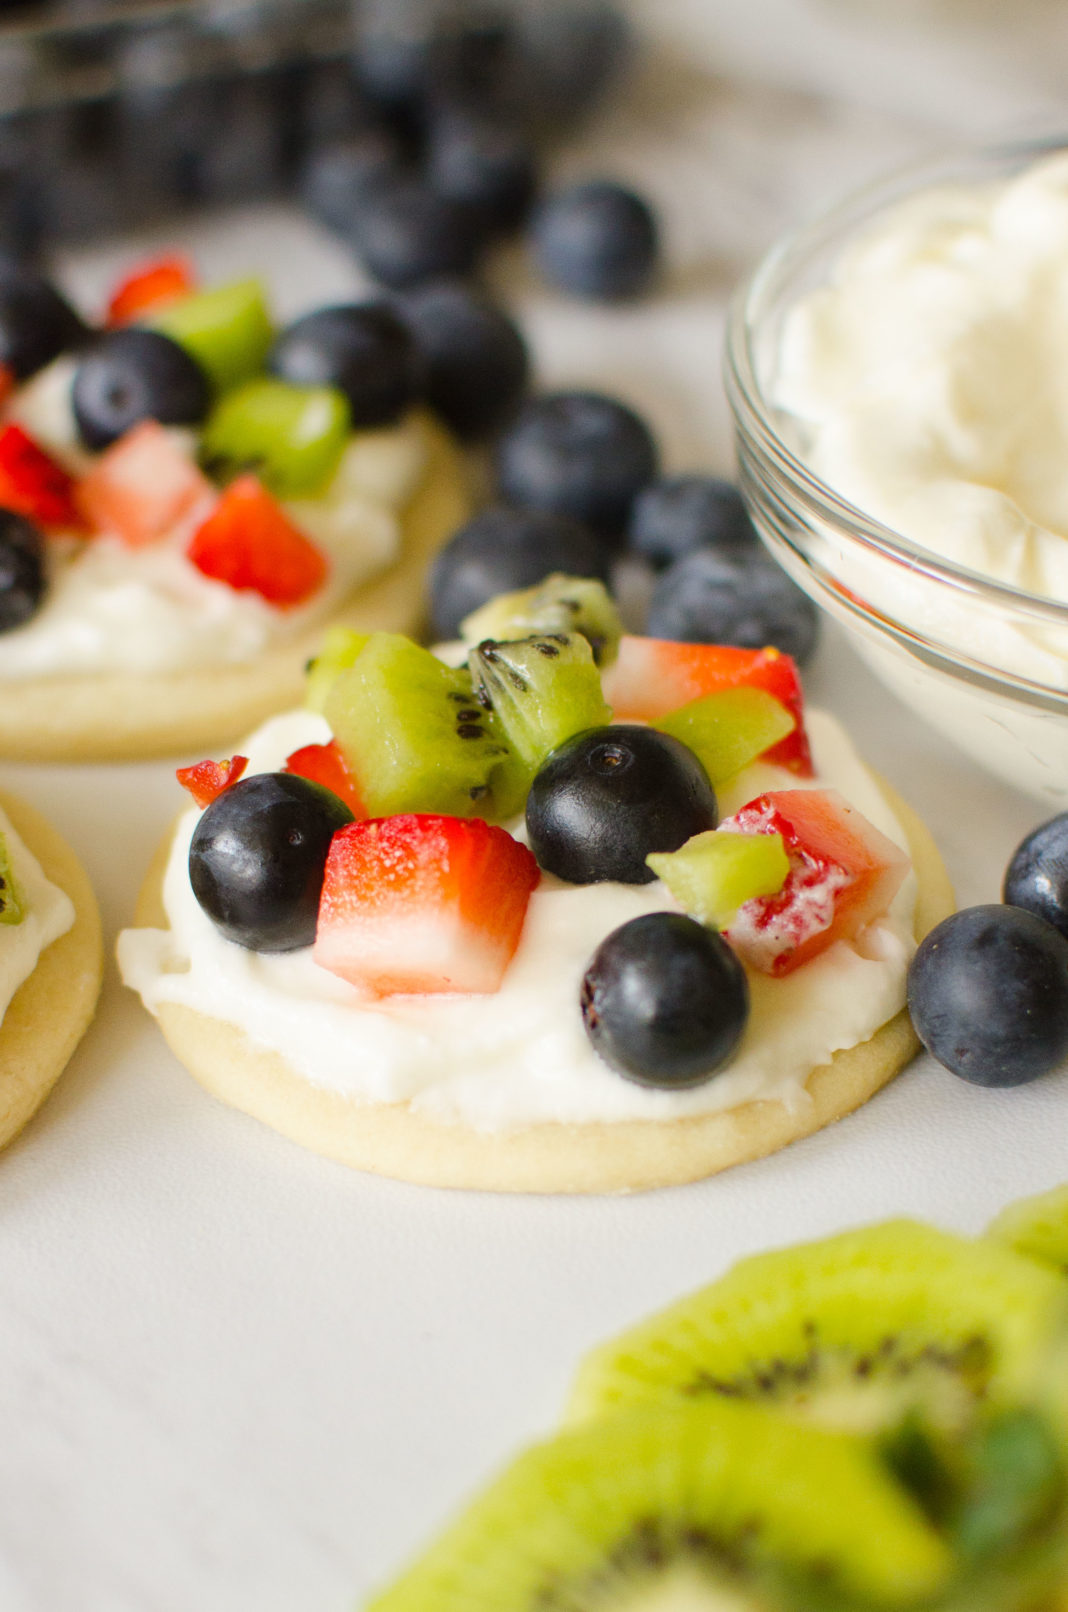 Fruit Pizza Cookies are all the goodness you get in a fruit pizza individualized! Soft crust, vanilla whipped cream frosting, topped with your favorite fruits; strawberries, raspberries, blueberries, kiwi, blackberries, mango.. the possibilities are endless!